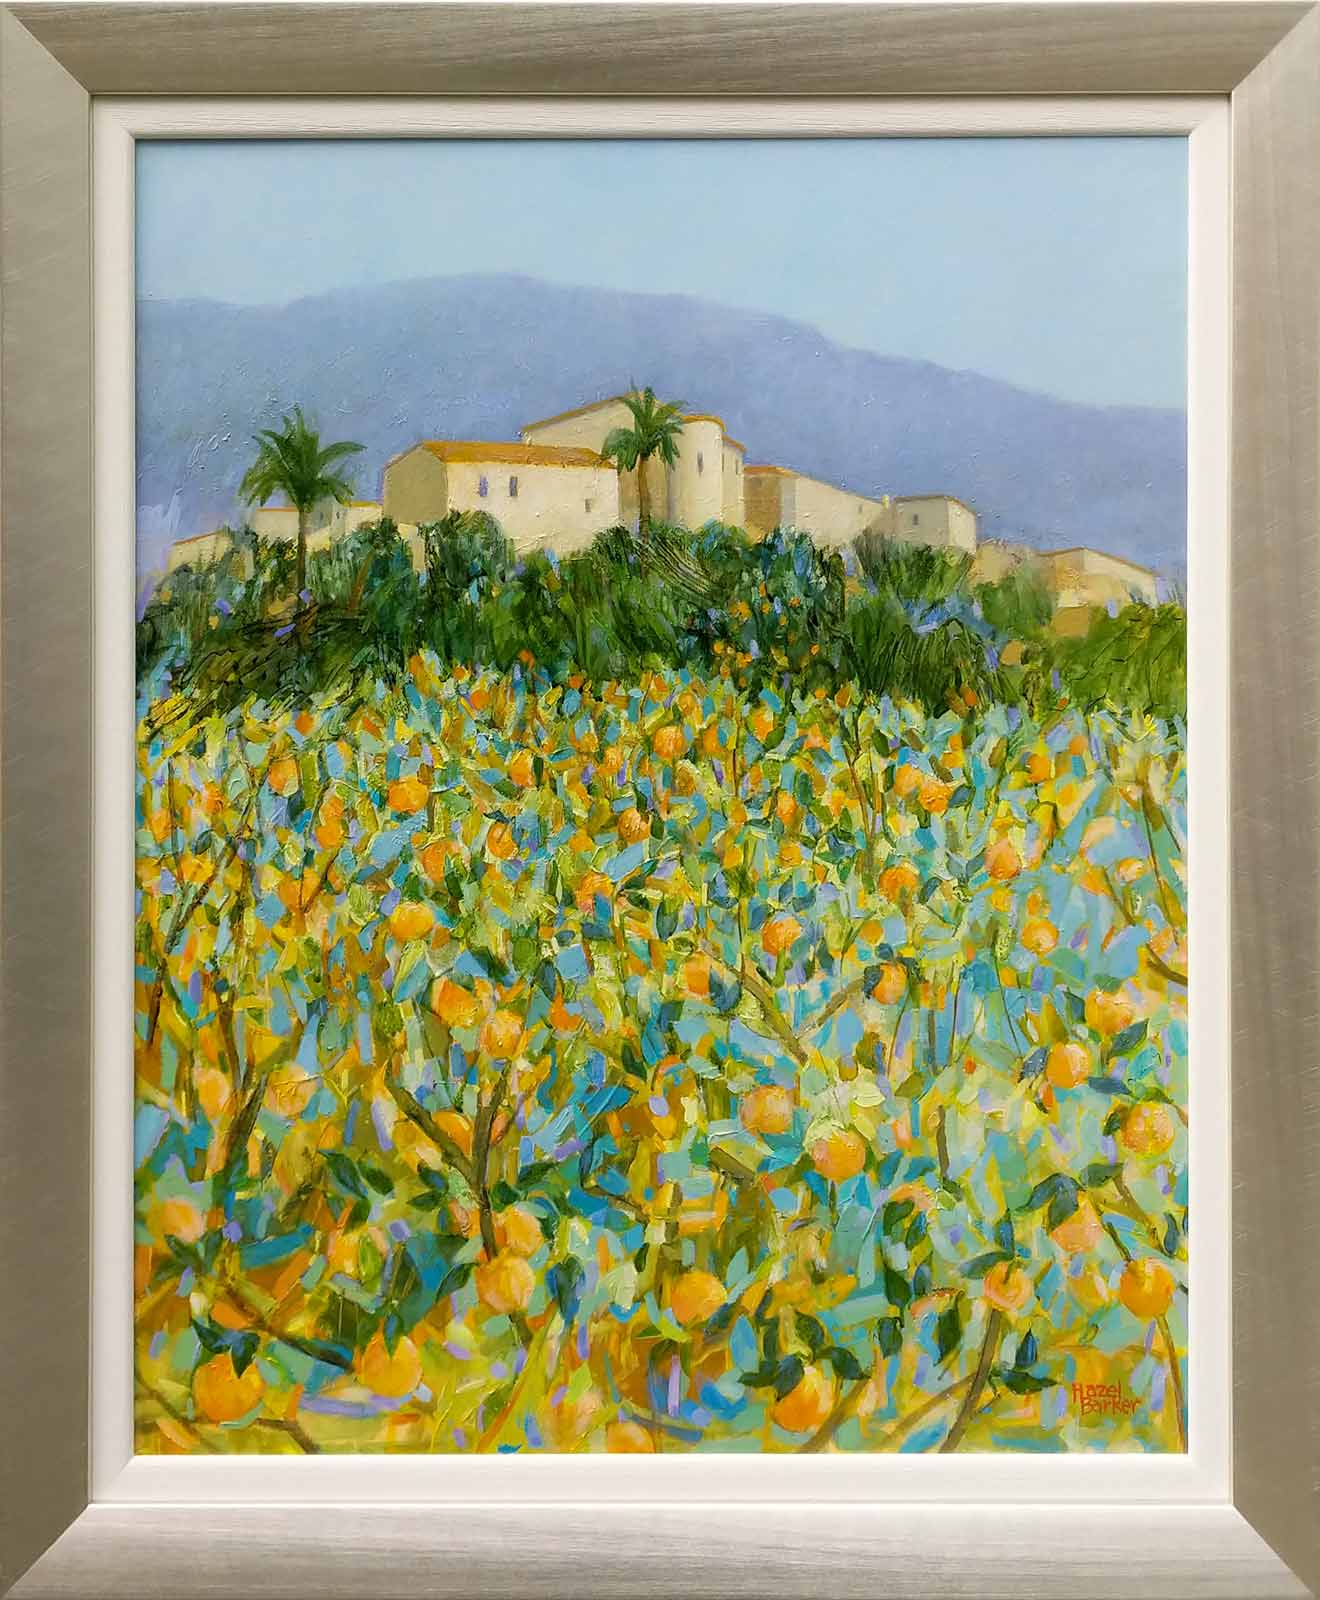 Hazy Sunshine Over Orange Groves, Andalucia, Hazel Barker